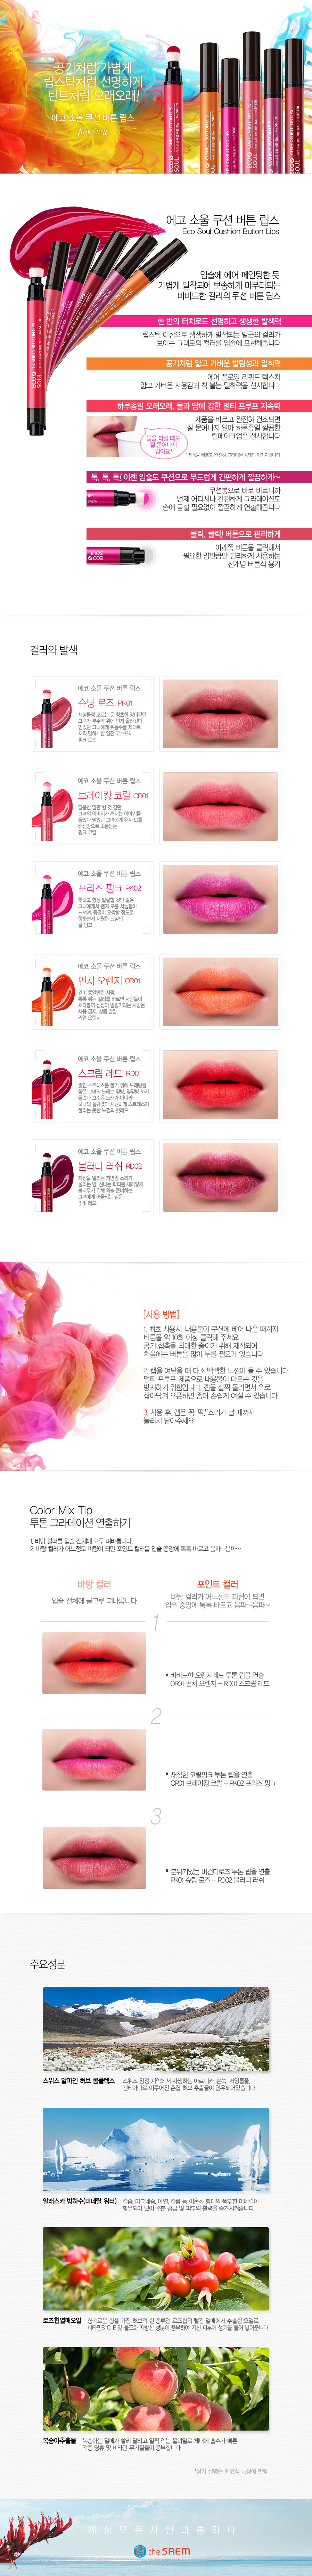 the-saem-eco-soul-cushion-button-lips-41g-desc.jpg